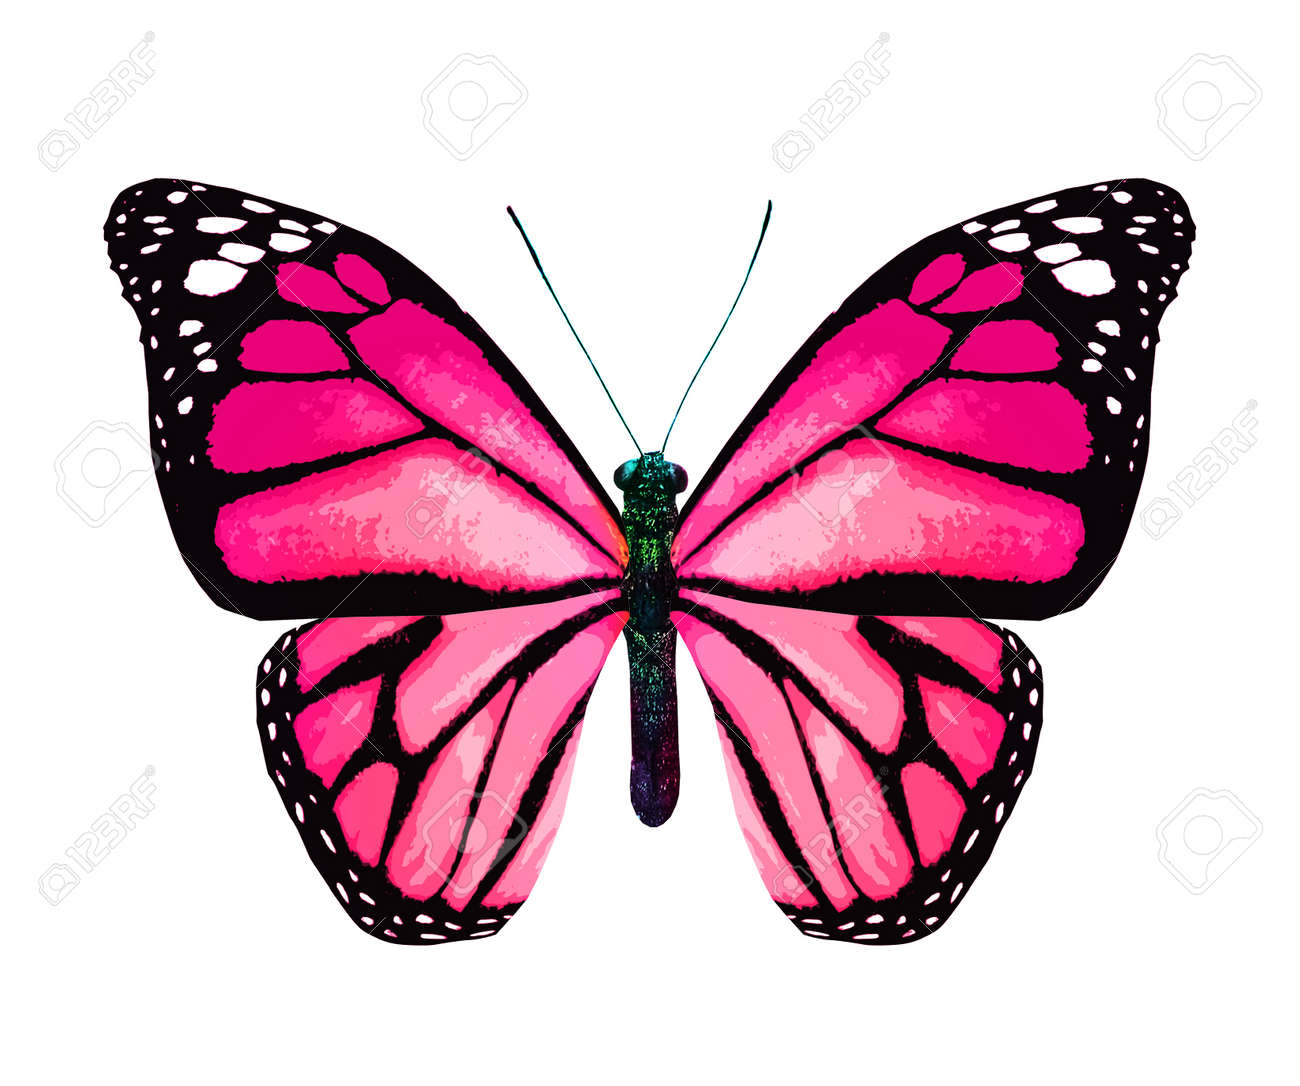 Color monarch butterfly, isolated on the white background - 165272786